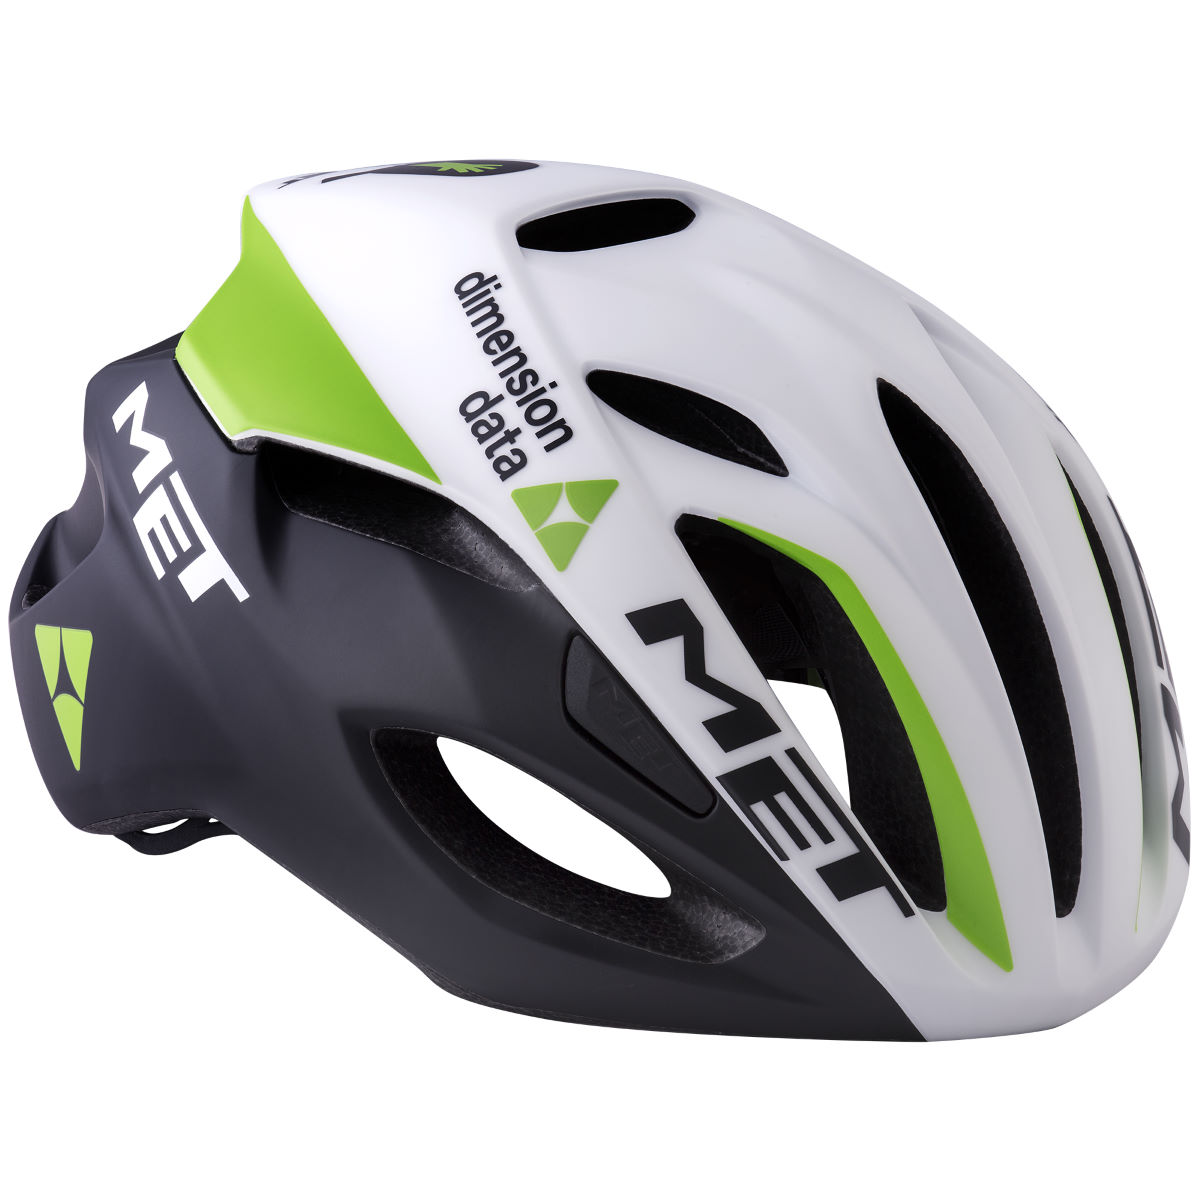 MET - Dimension Data Rivale Aero Road Helmet Black/Green - Small